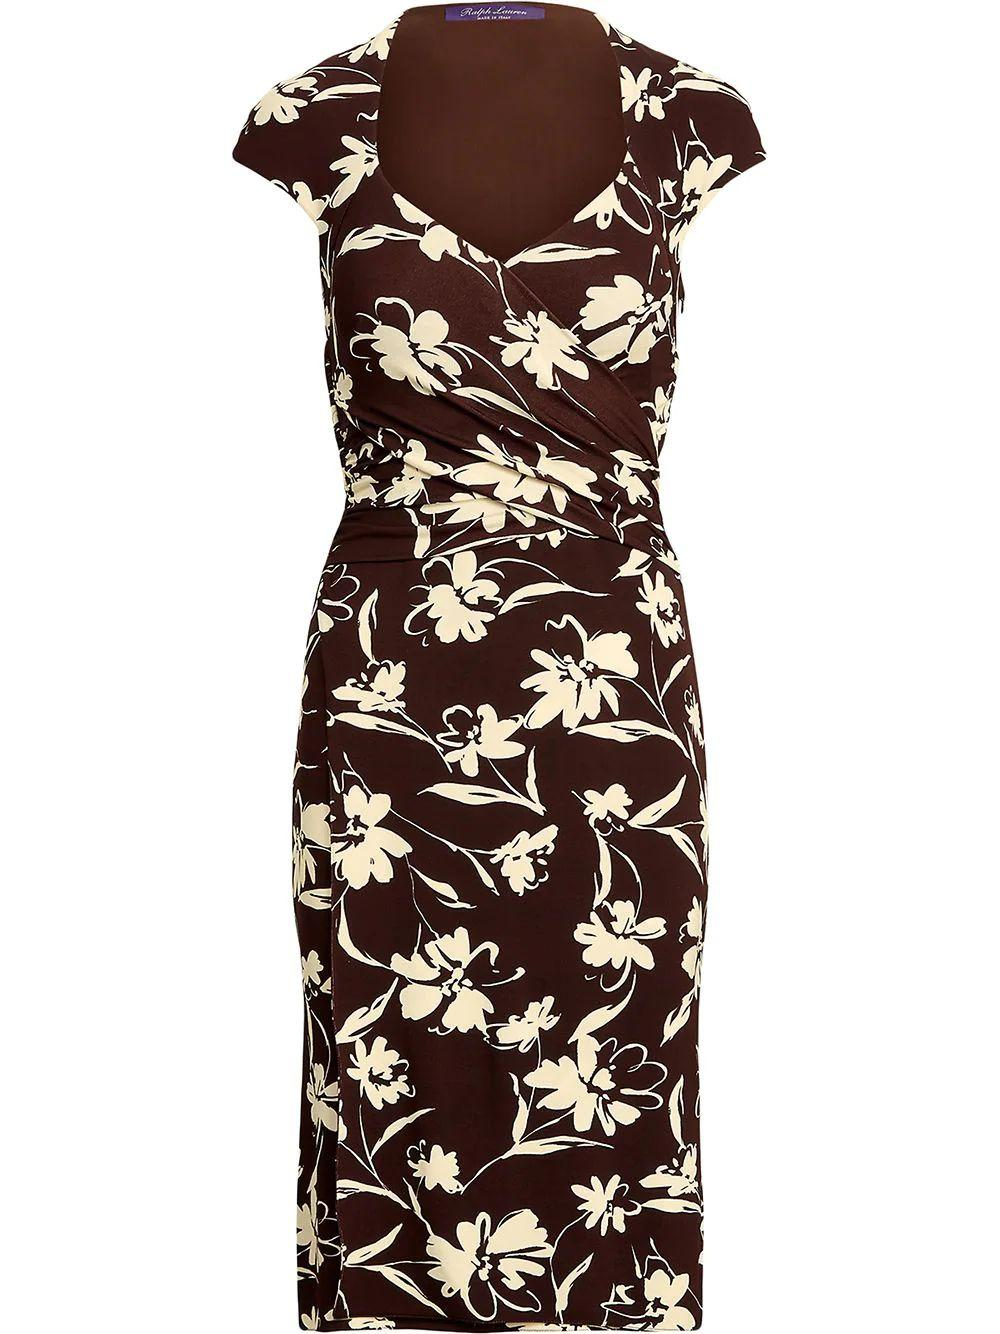 Jaela Floral Day Dress